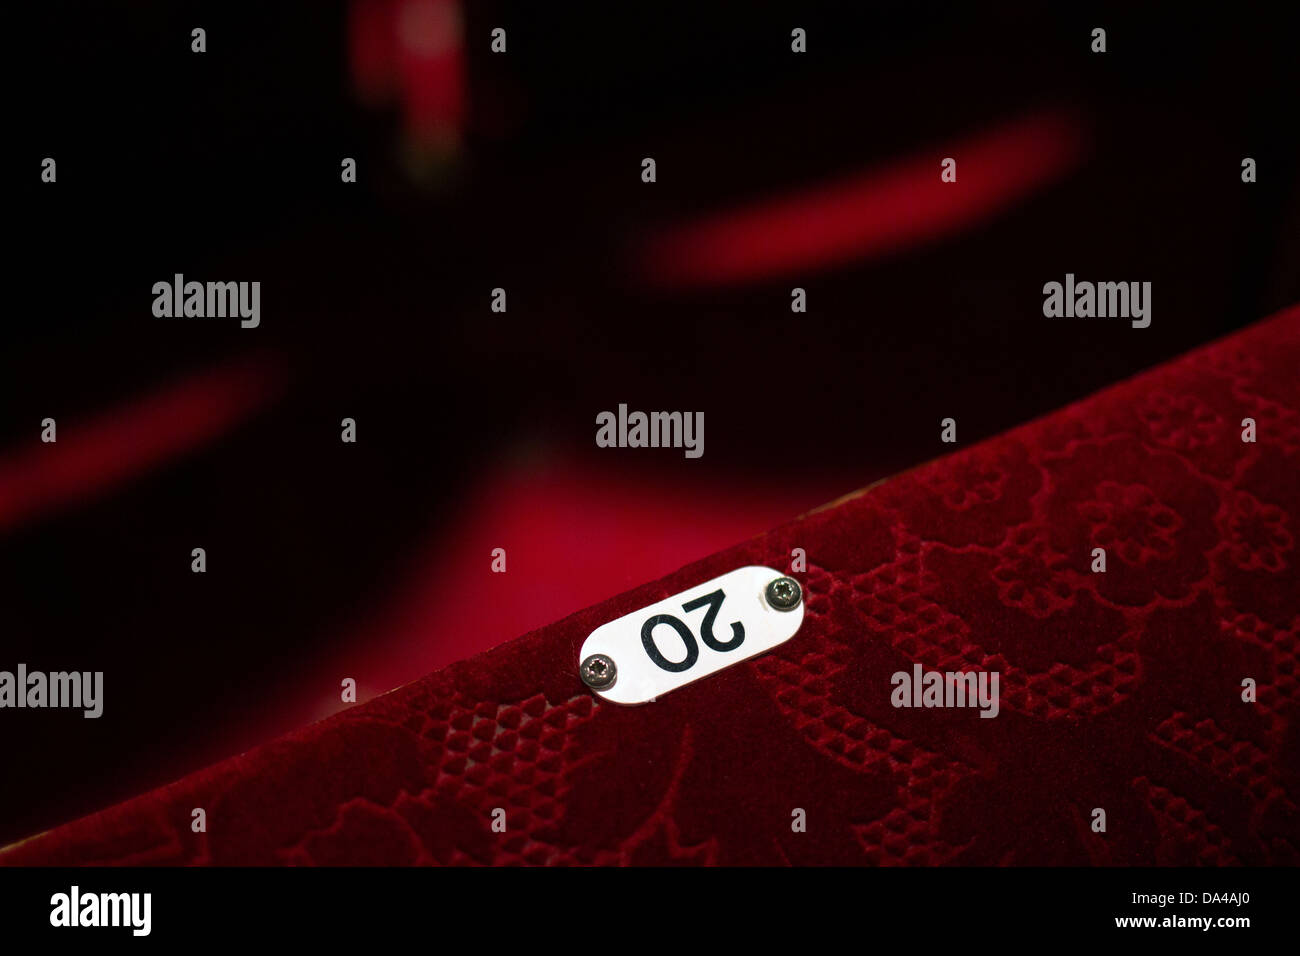 20,theatre seat,cinema, seat, theater, chair, red, auditorium, number 20, architectural styles, contemporary,twenty, design,red Stock Photo